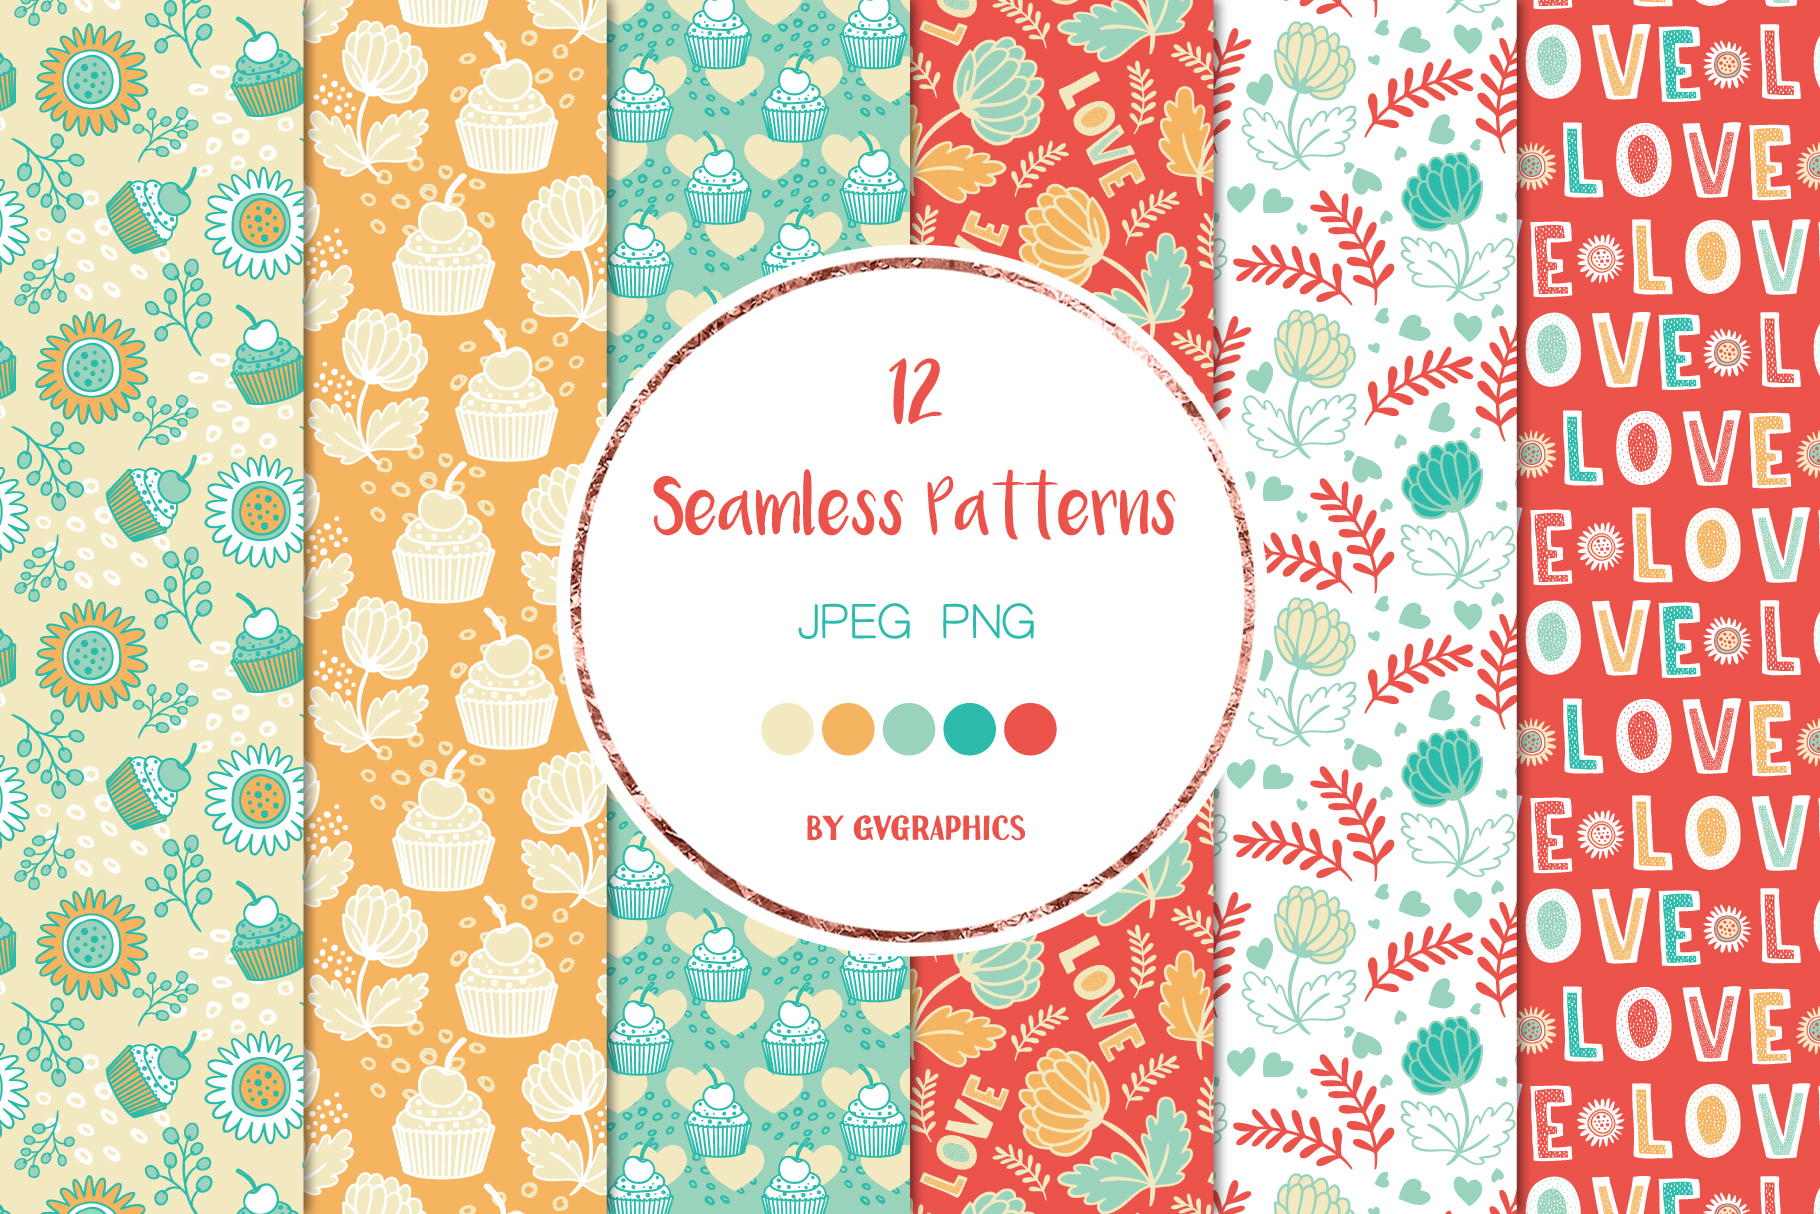 Exsamples Love and Flowersand Muffins Seamless Patterns.